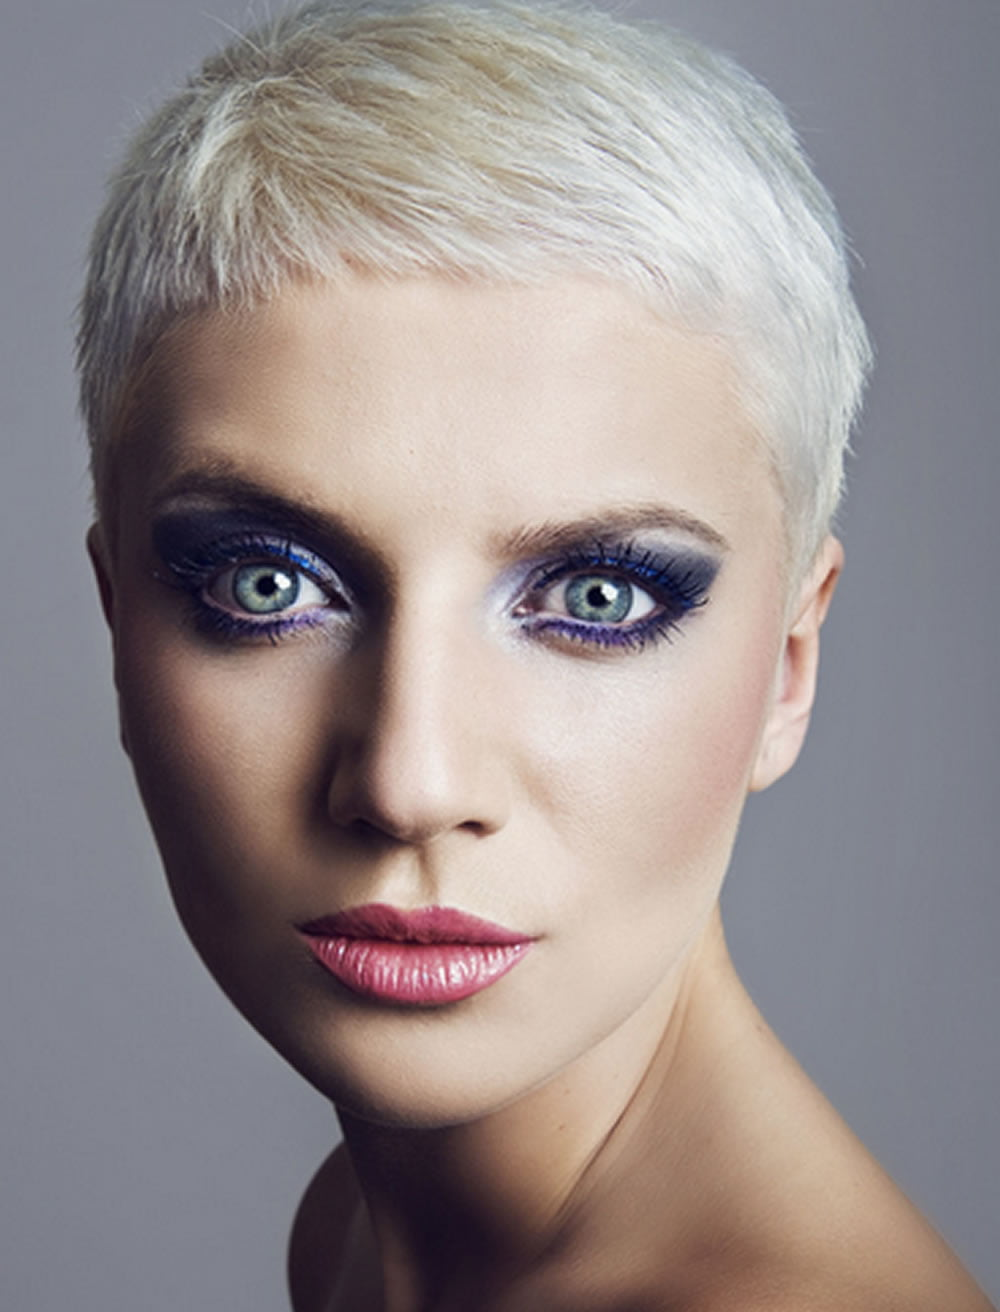 Beautiful Styles With Pixie Cuts for Thick Hair